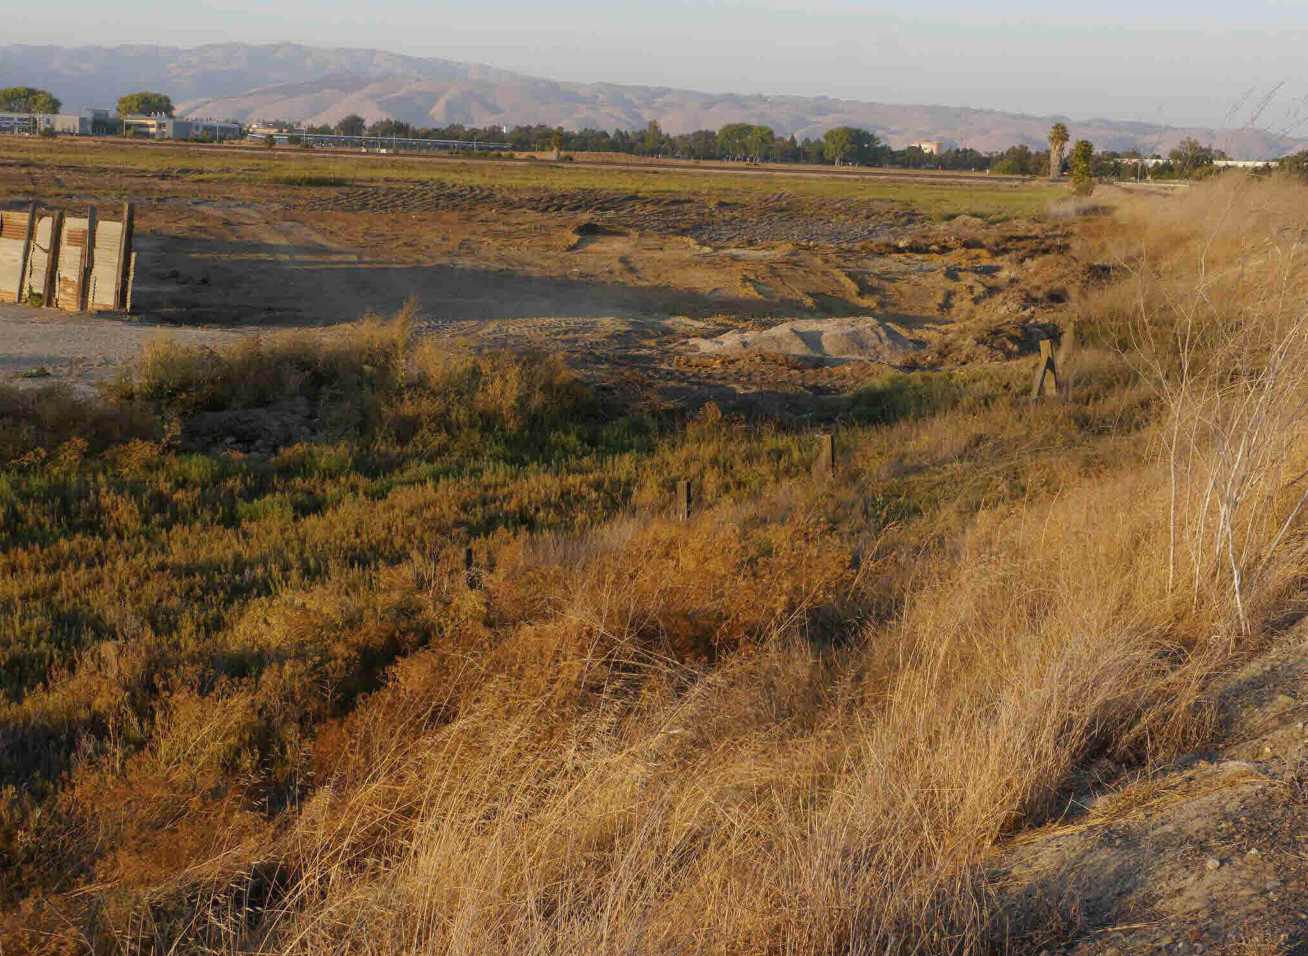 Federally protected wetlands in Newark where James Lucero dumped dirt and construction debris. Photo by Citizens Committee to Complete the Refuge via federal court filings.